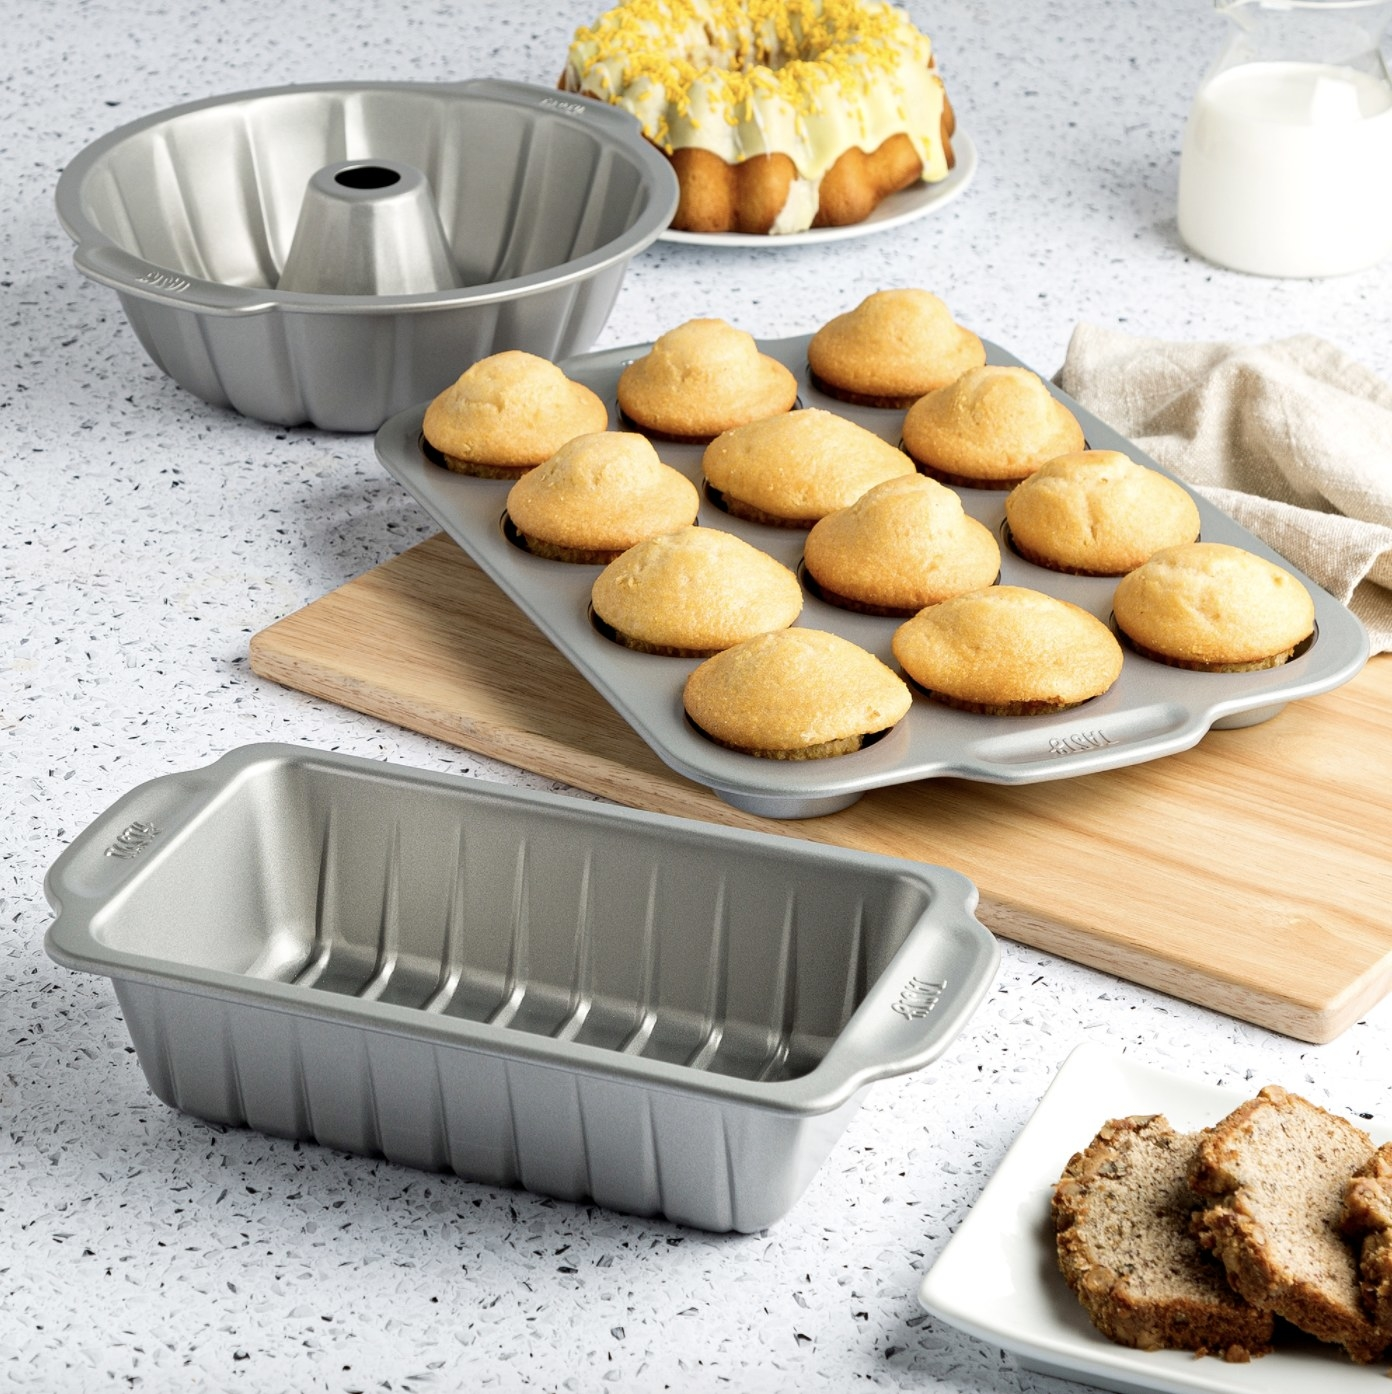 The set is stainless still and is surrounded by/holding muffins, cake, milk and bread